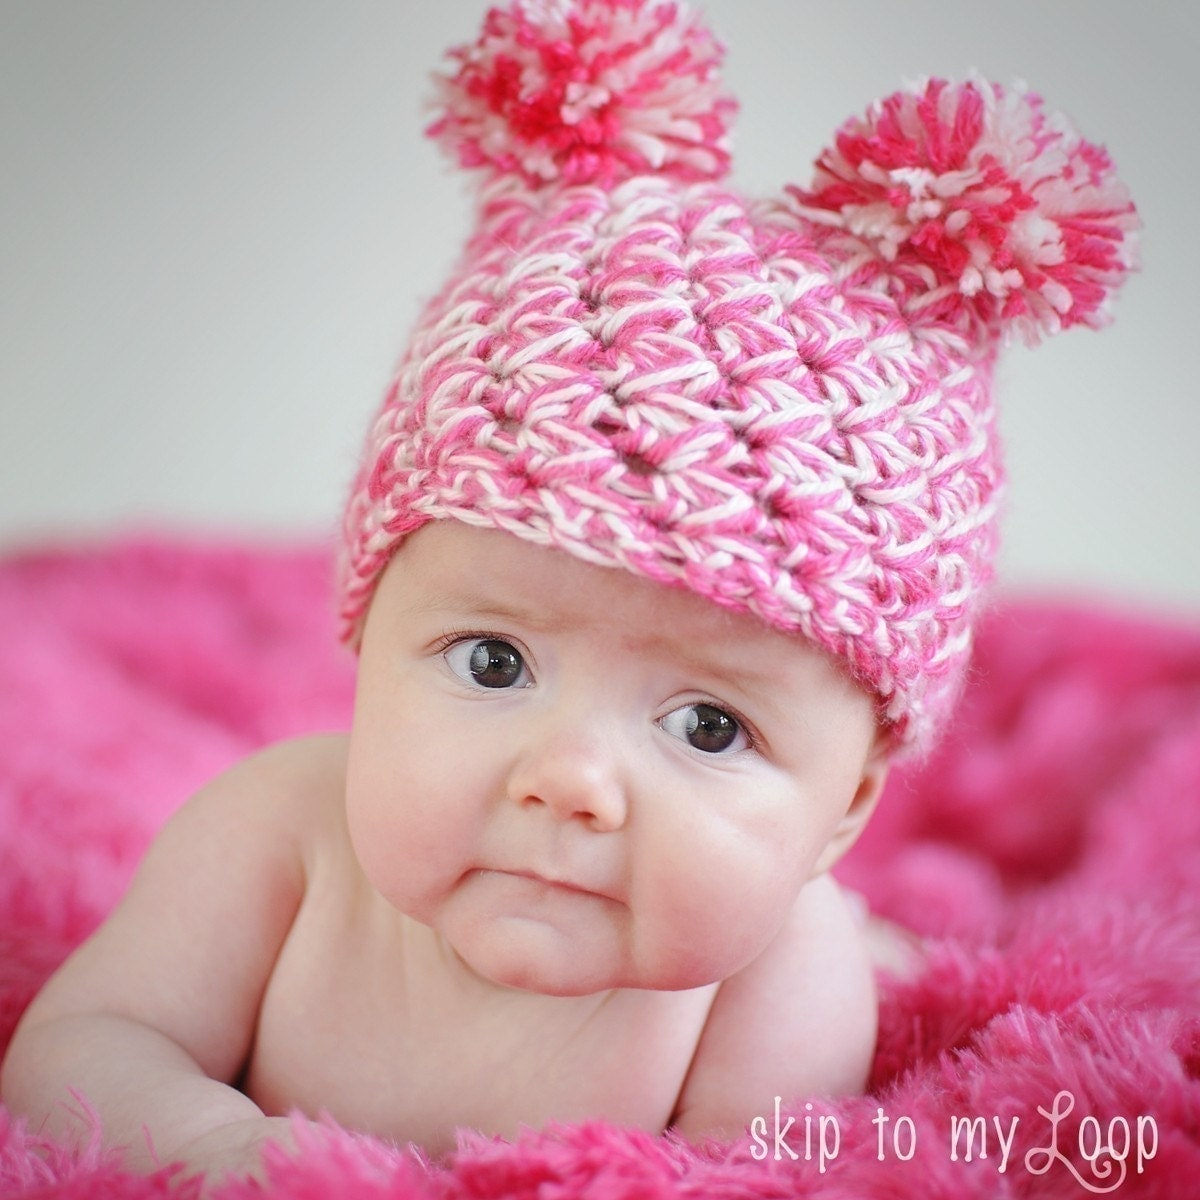 Crochet Baby Hat Pattern With Pom Pom : Items similar to Pom Pom Baby Hat - Crochet Pattern ...